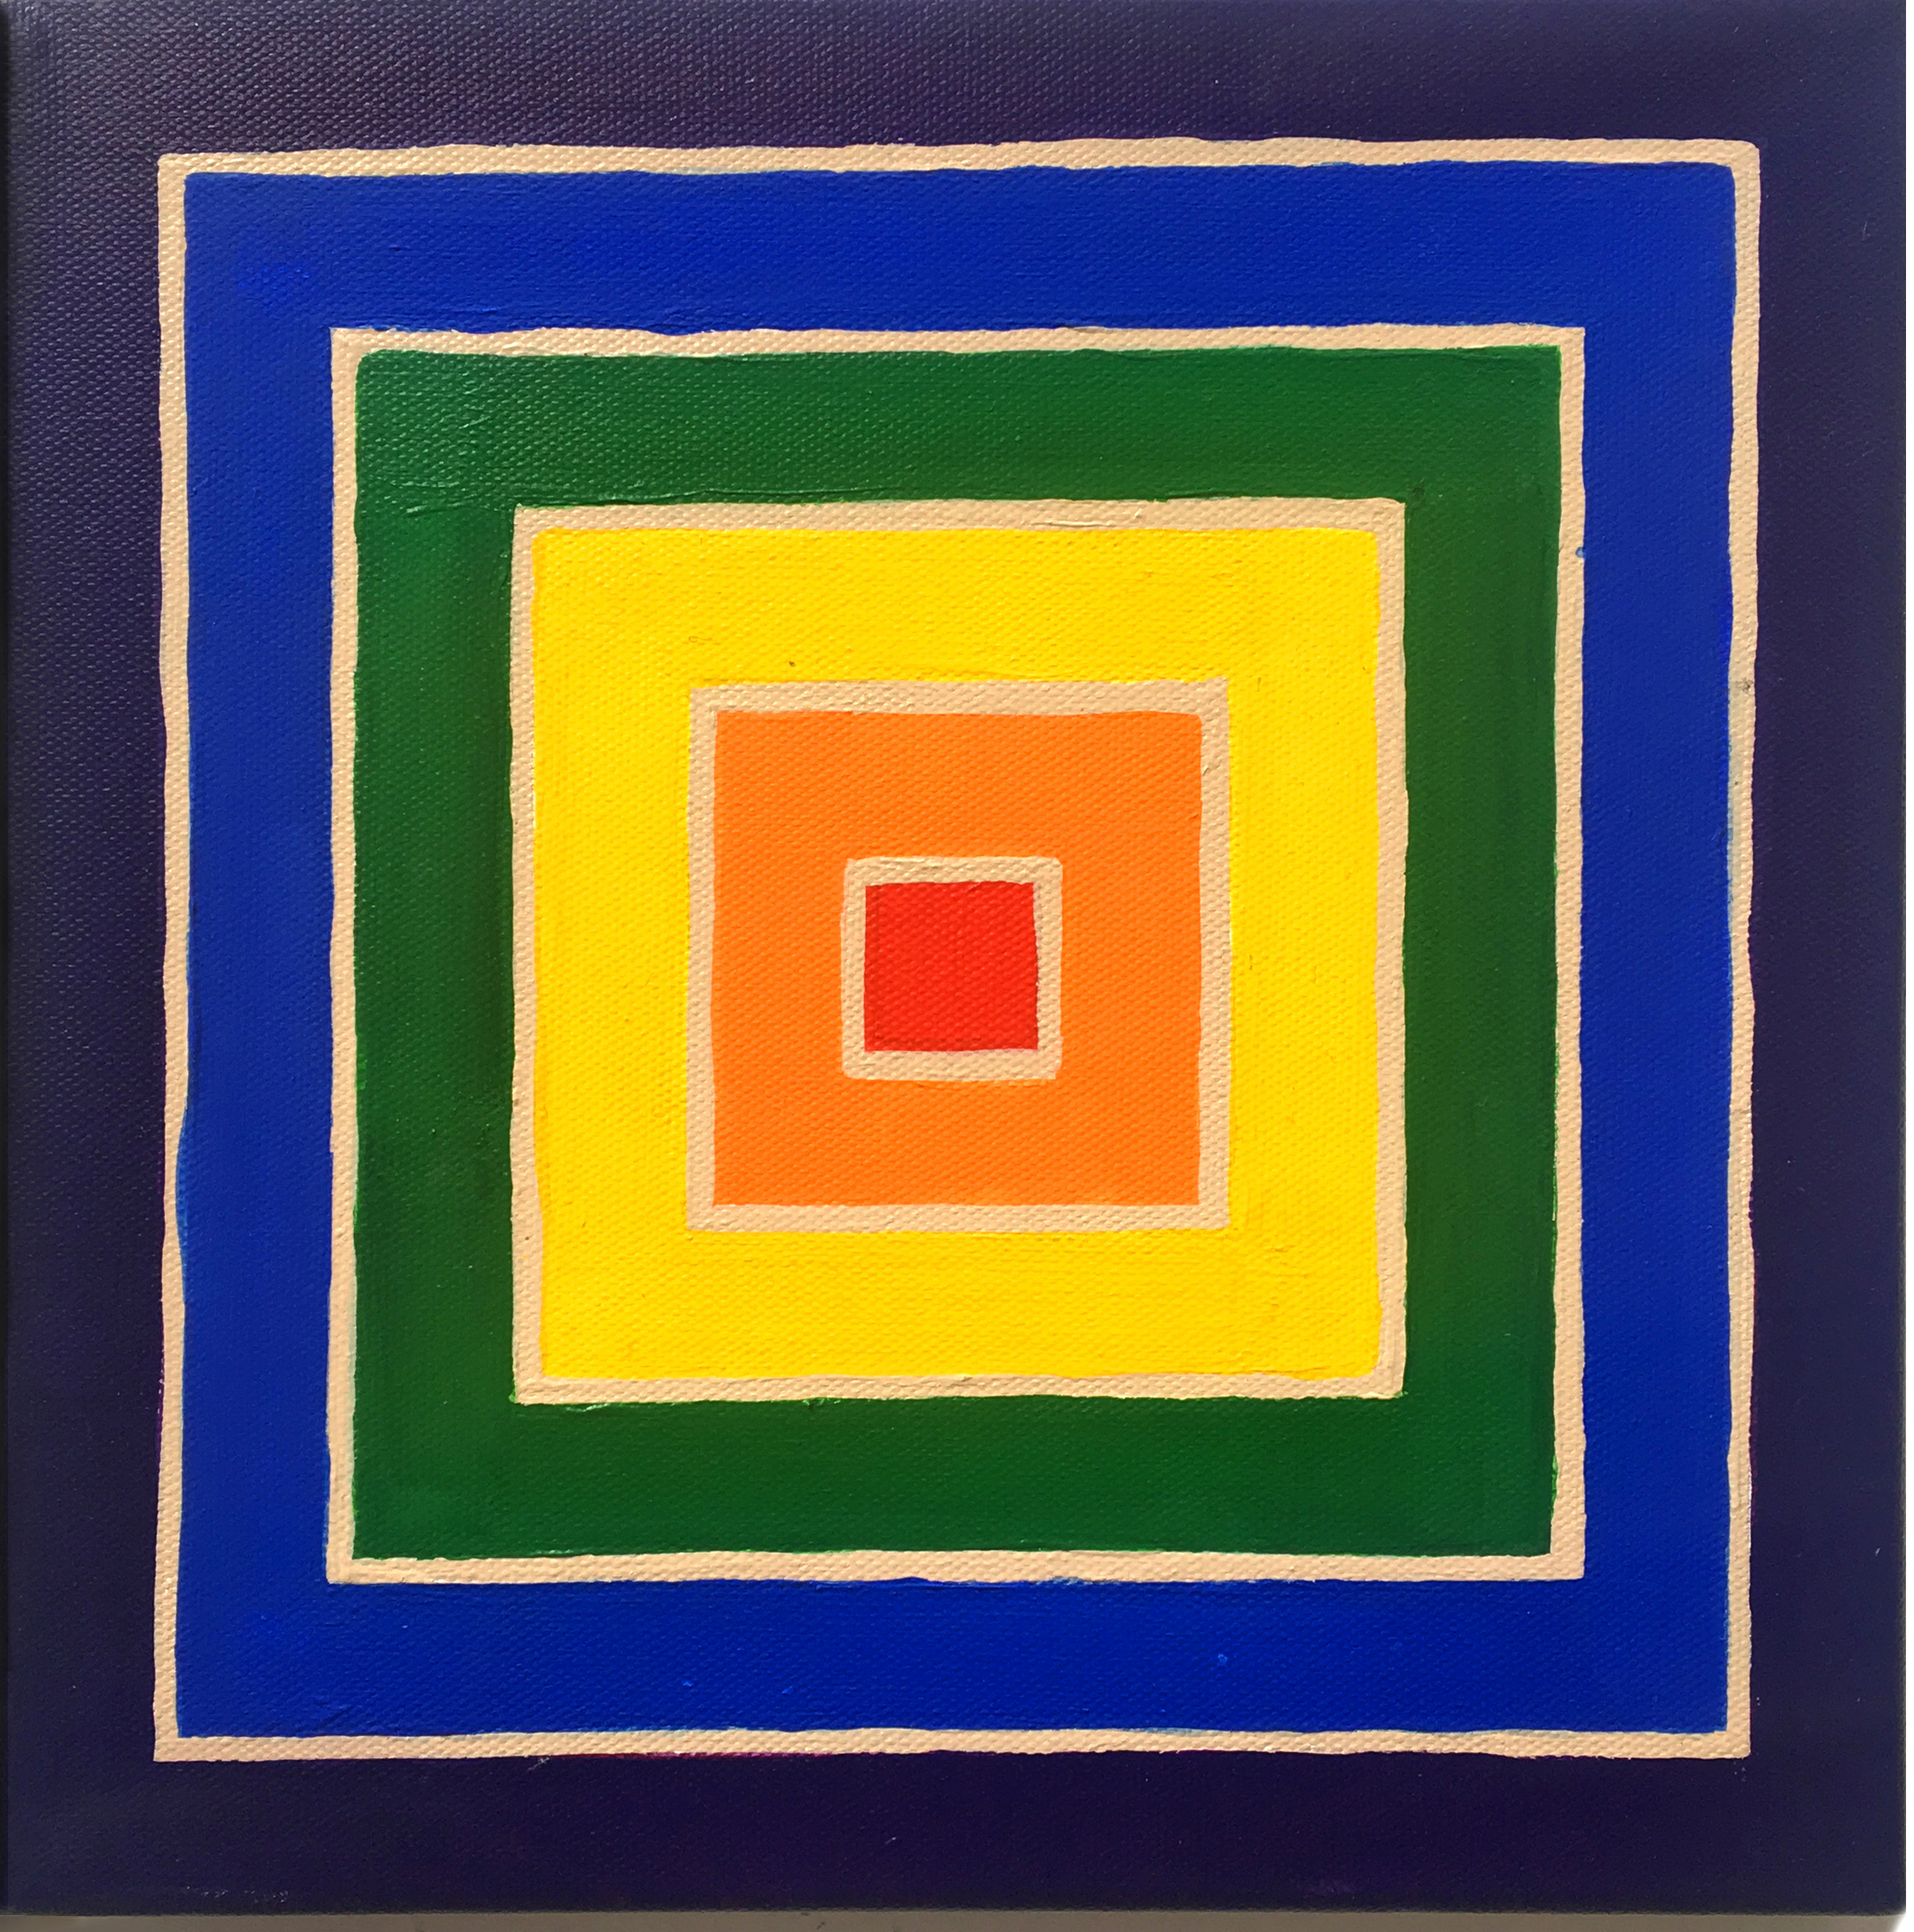 Frank Stella (2), 2019,  Acrylic on canvas,  10 x 10 inches,  25.4 x 25.4 cm